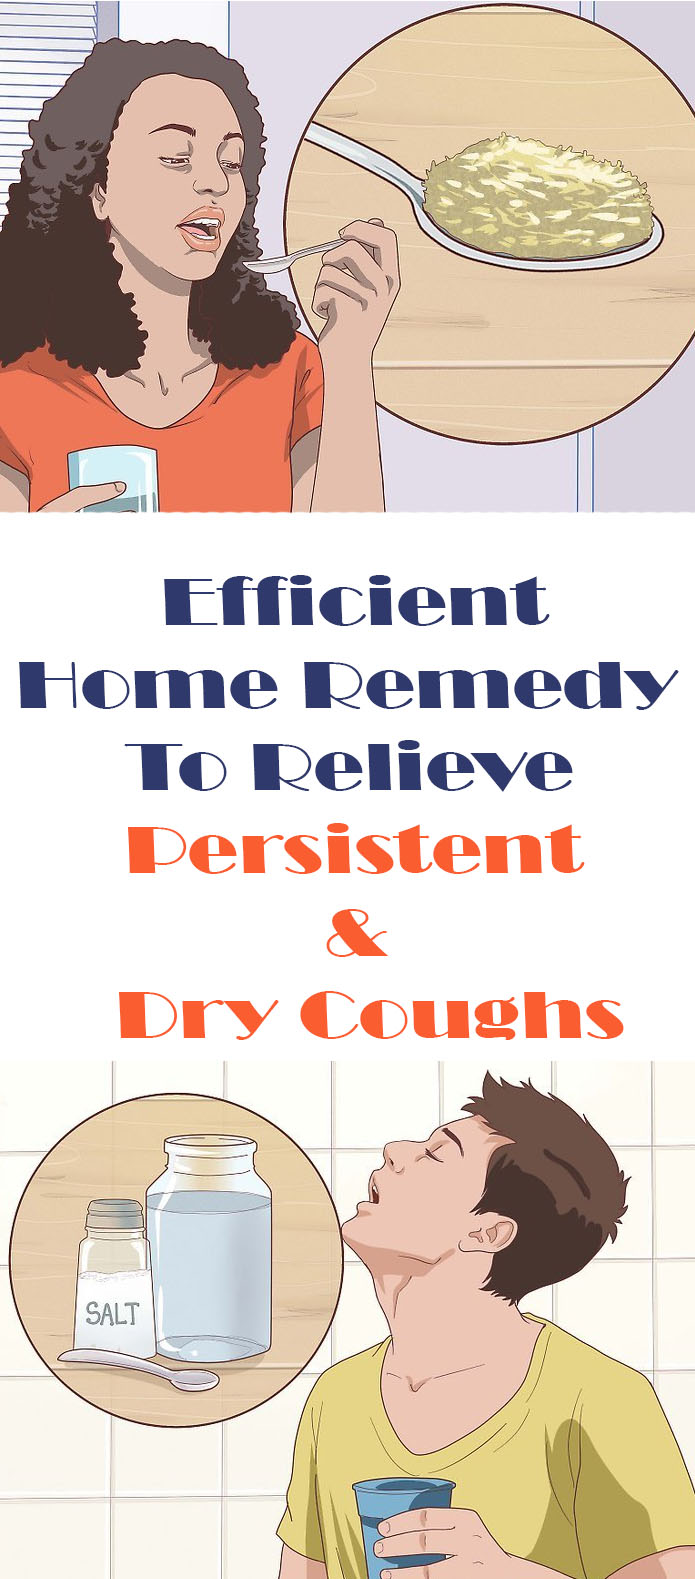 Efficient Home Remedy To Relieve Persistent & Dry Coughs